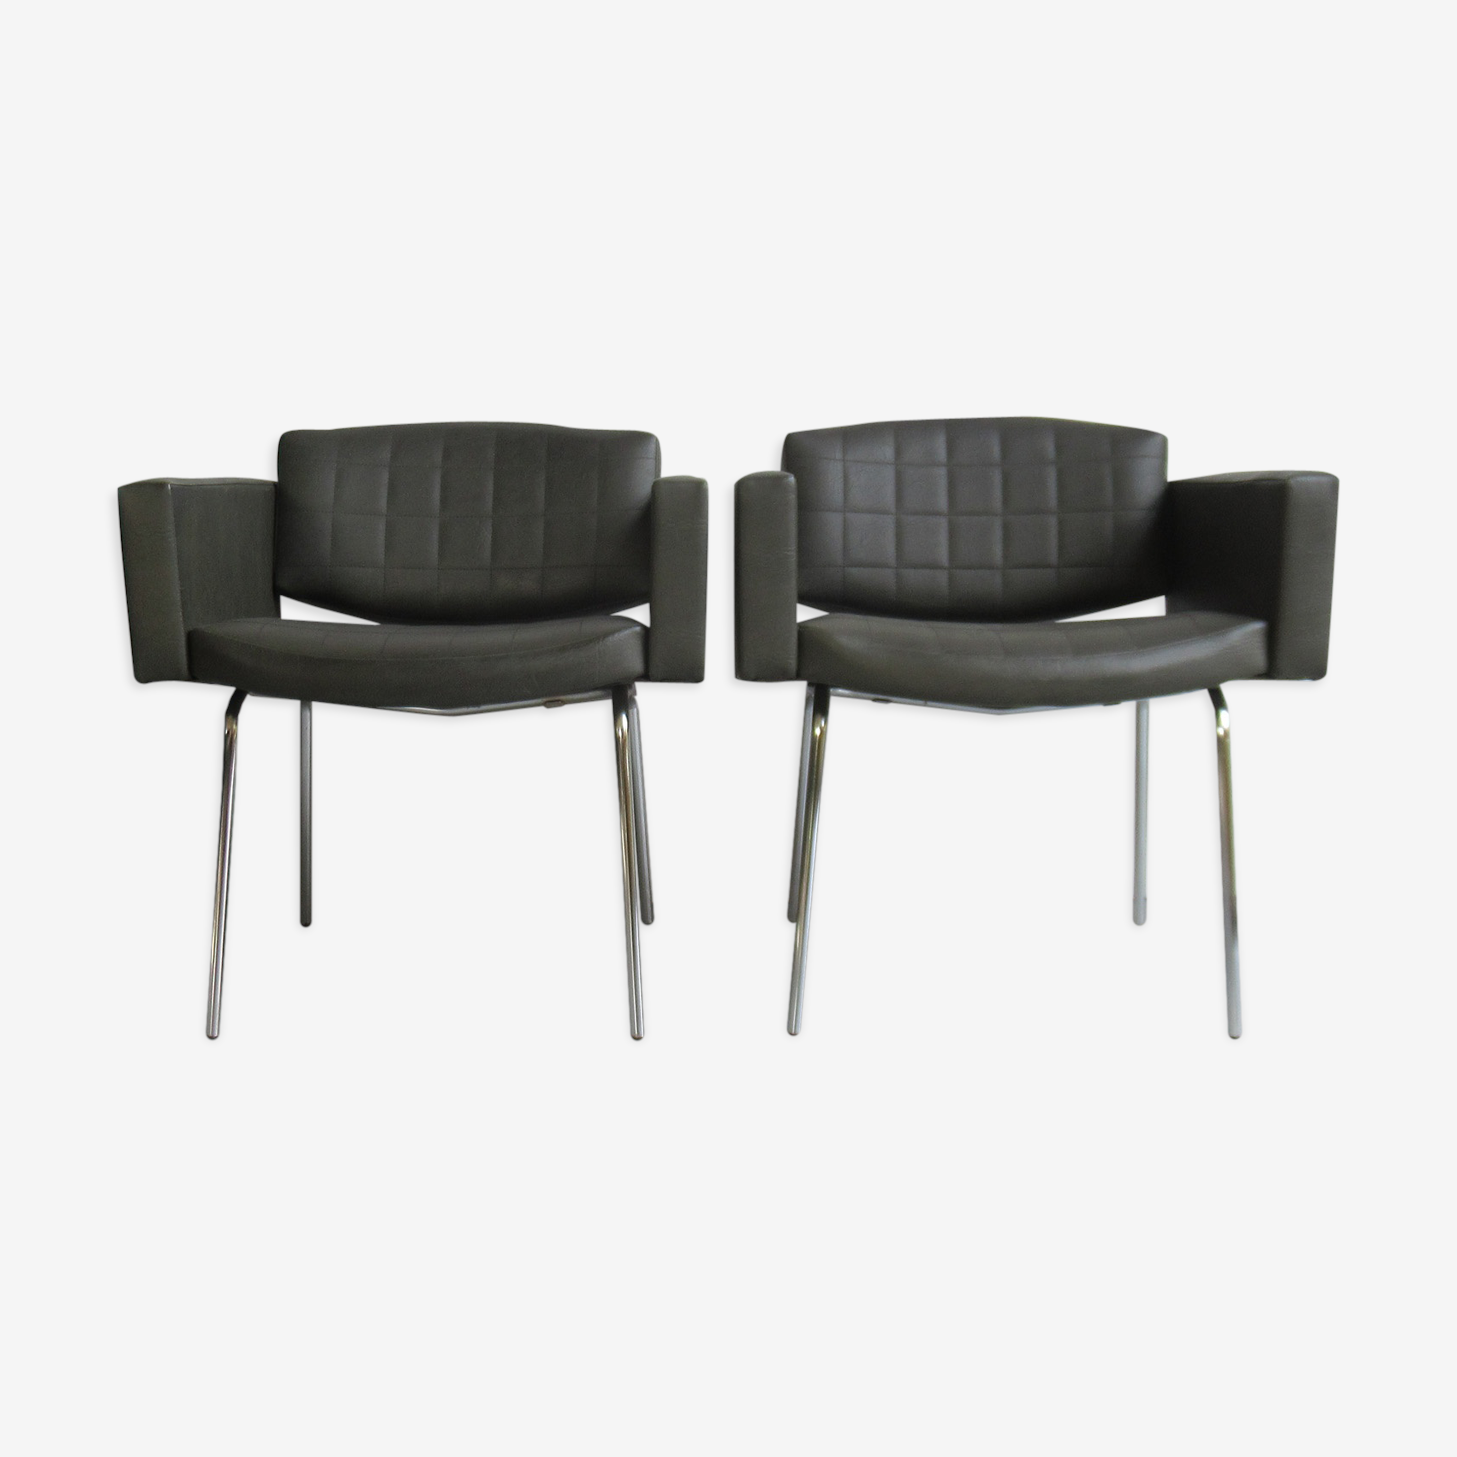 Pair of armchairs 'Conseil' of Pierre Guariche for Meurop 1960